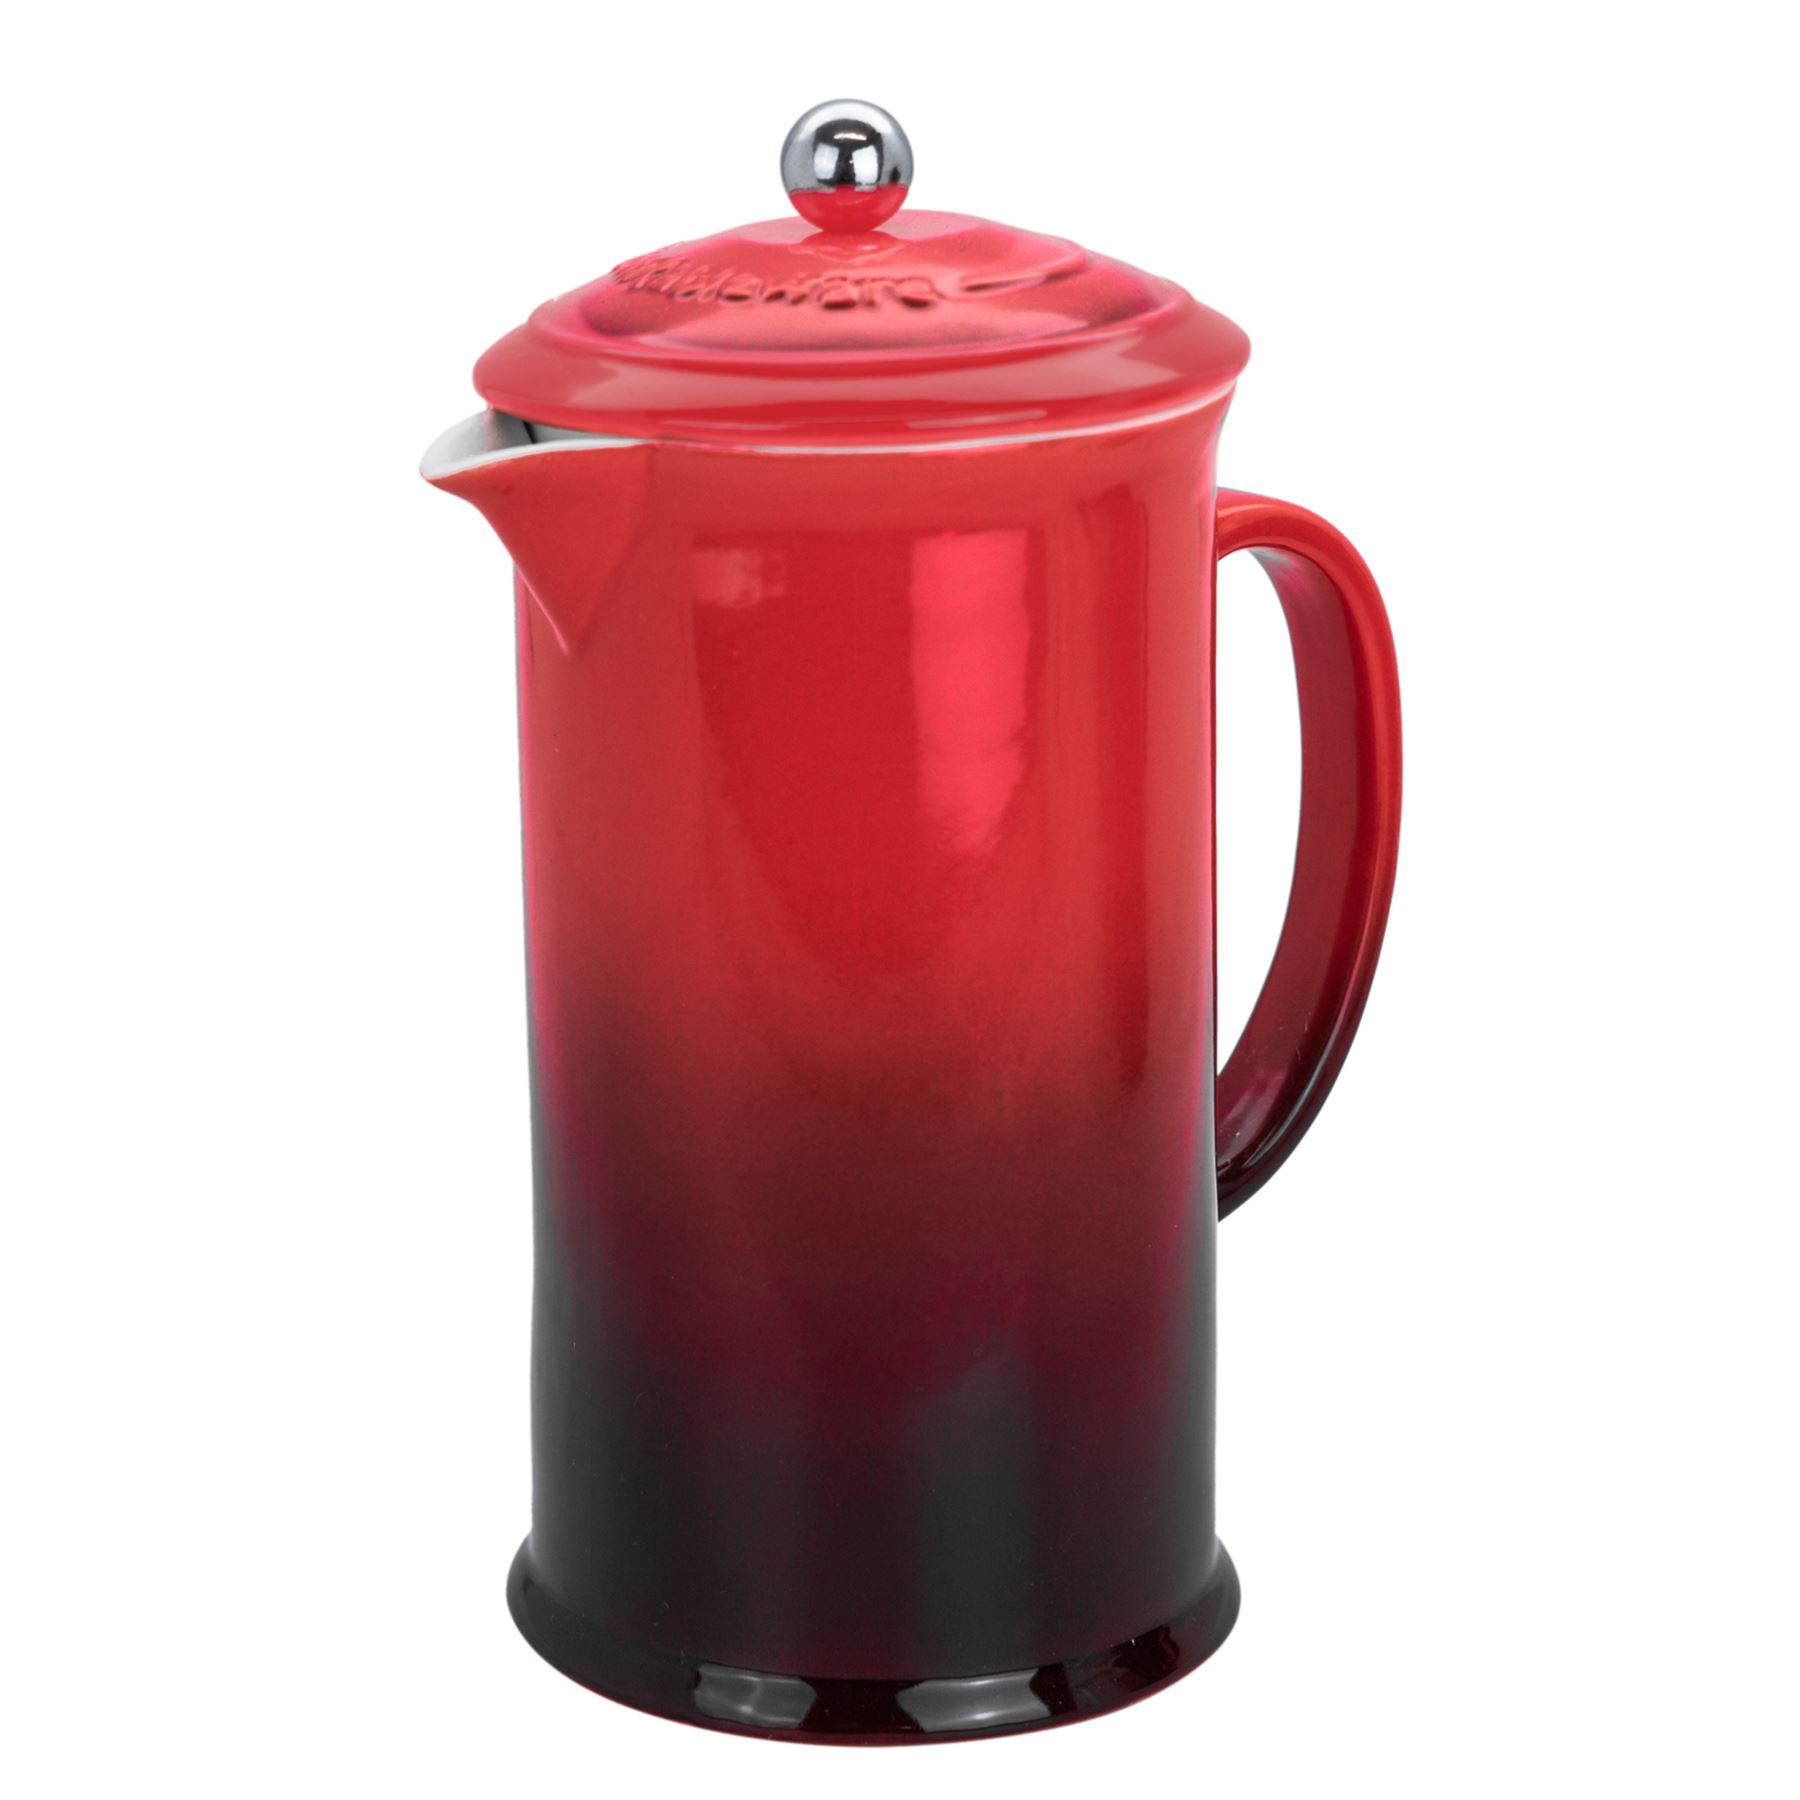 8baec9529569 Coffee Cafetiere Coffee Press French Press - 1 Litre   3 Cup - Red ...